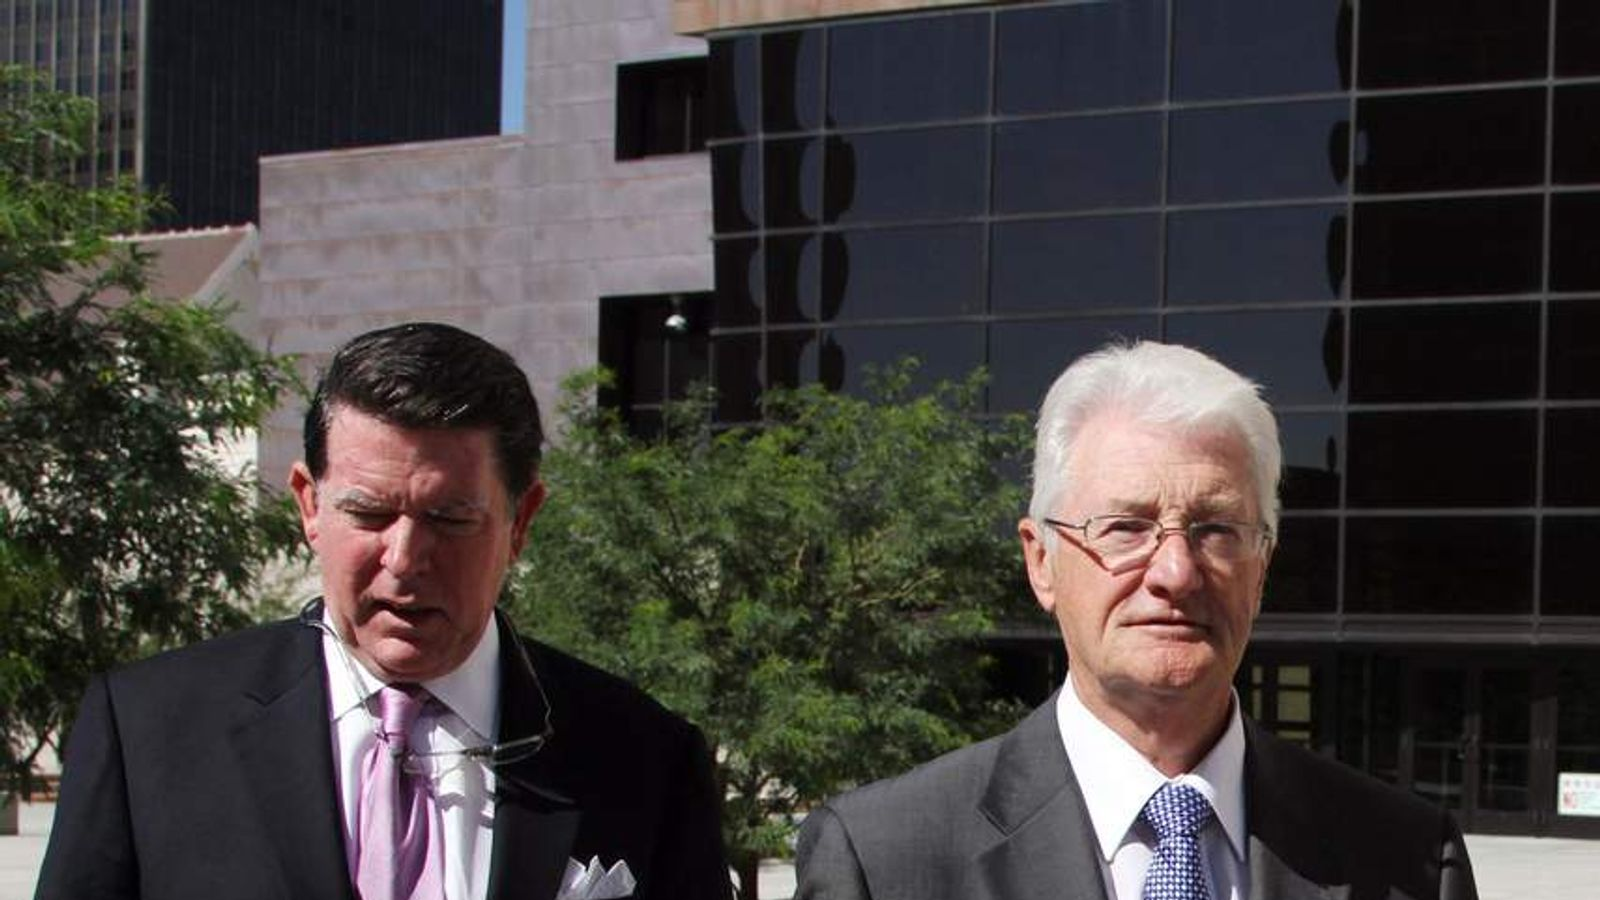 Christopher Tappin and lawyer Dan Cogdell